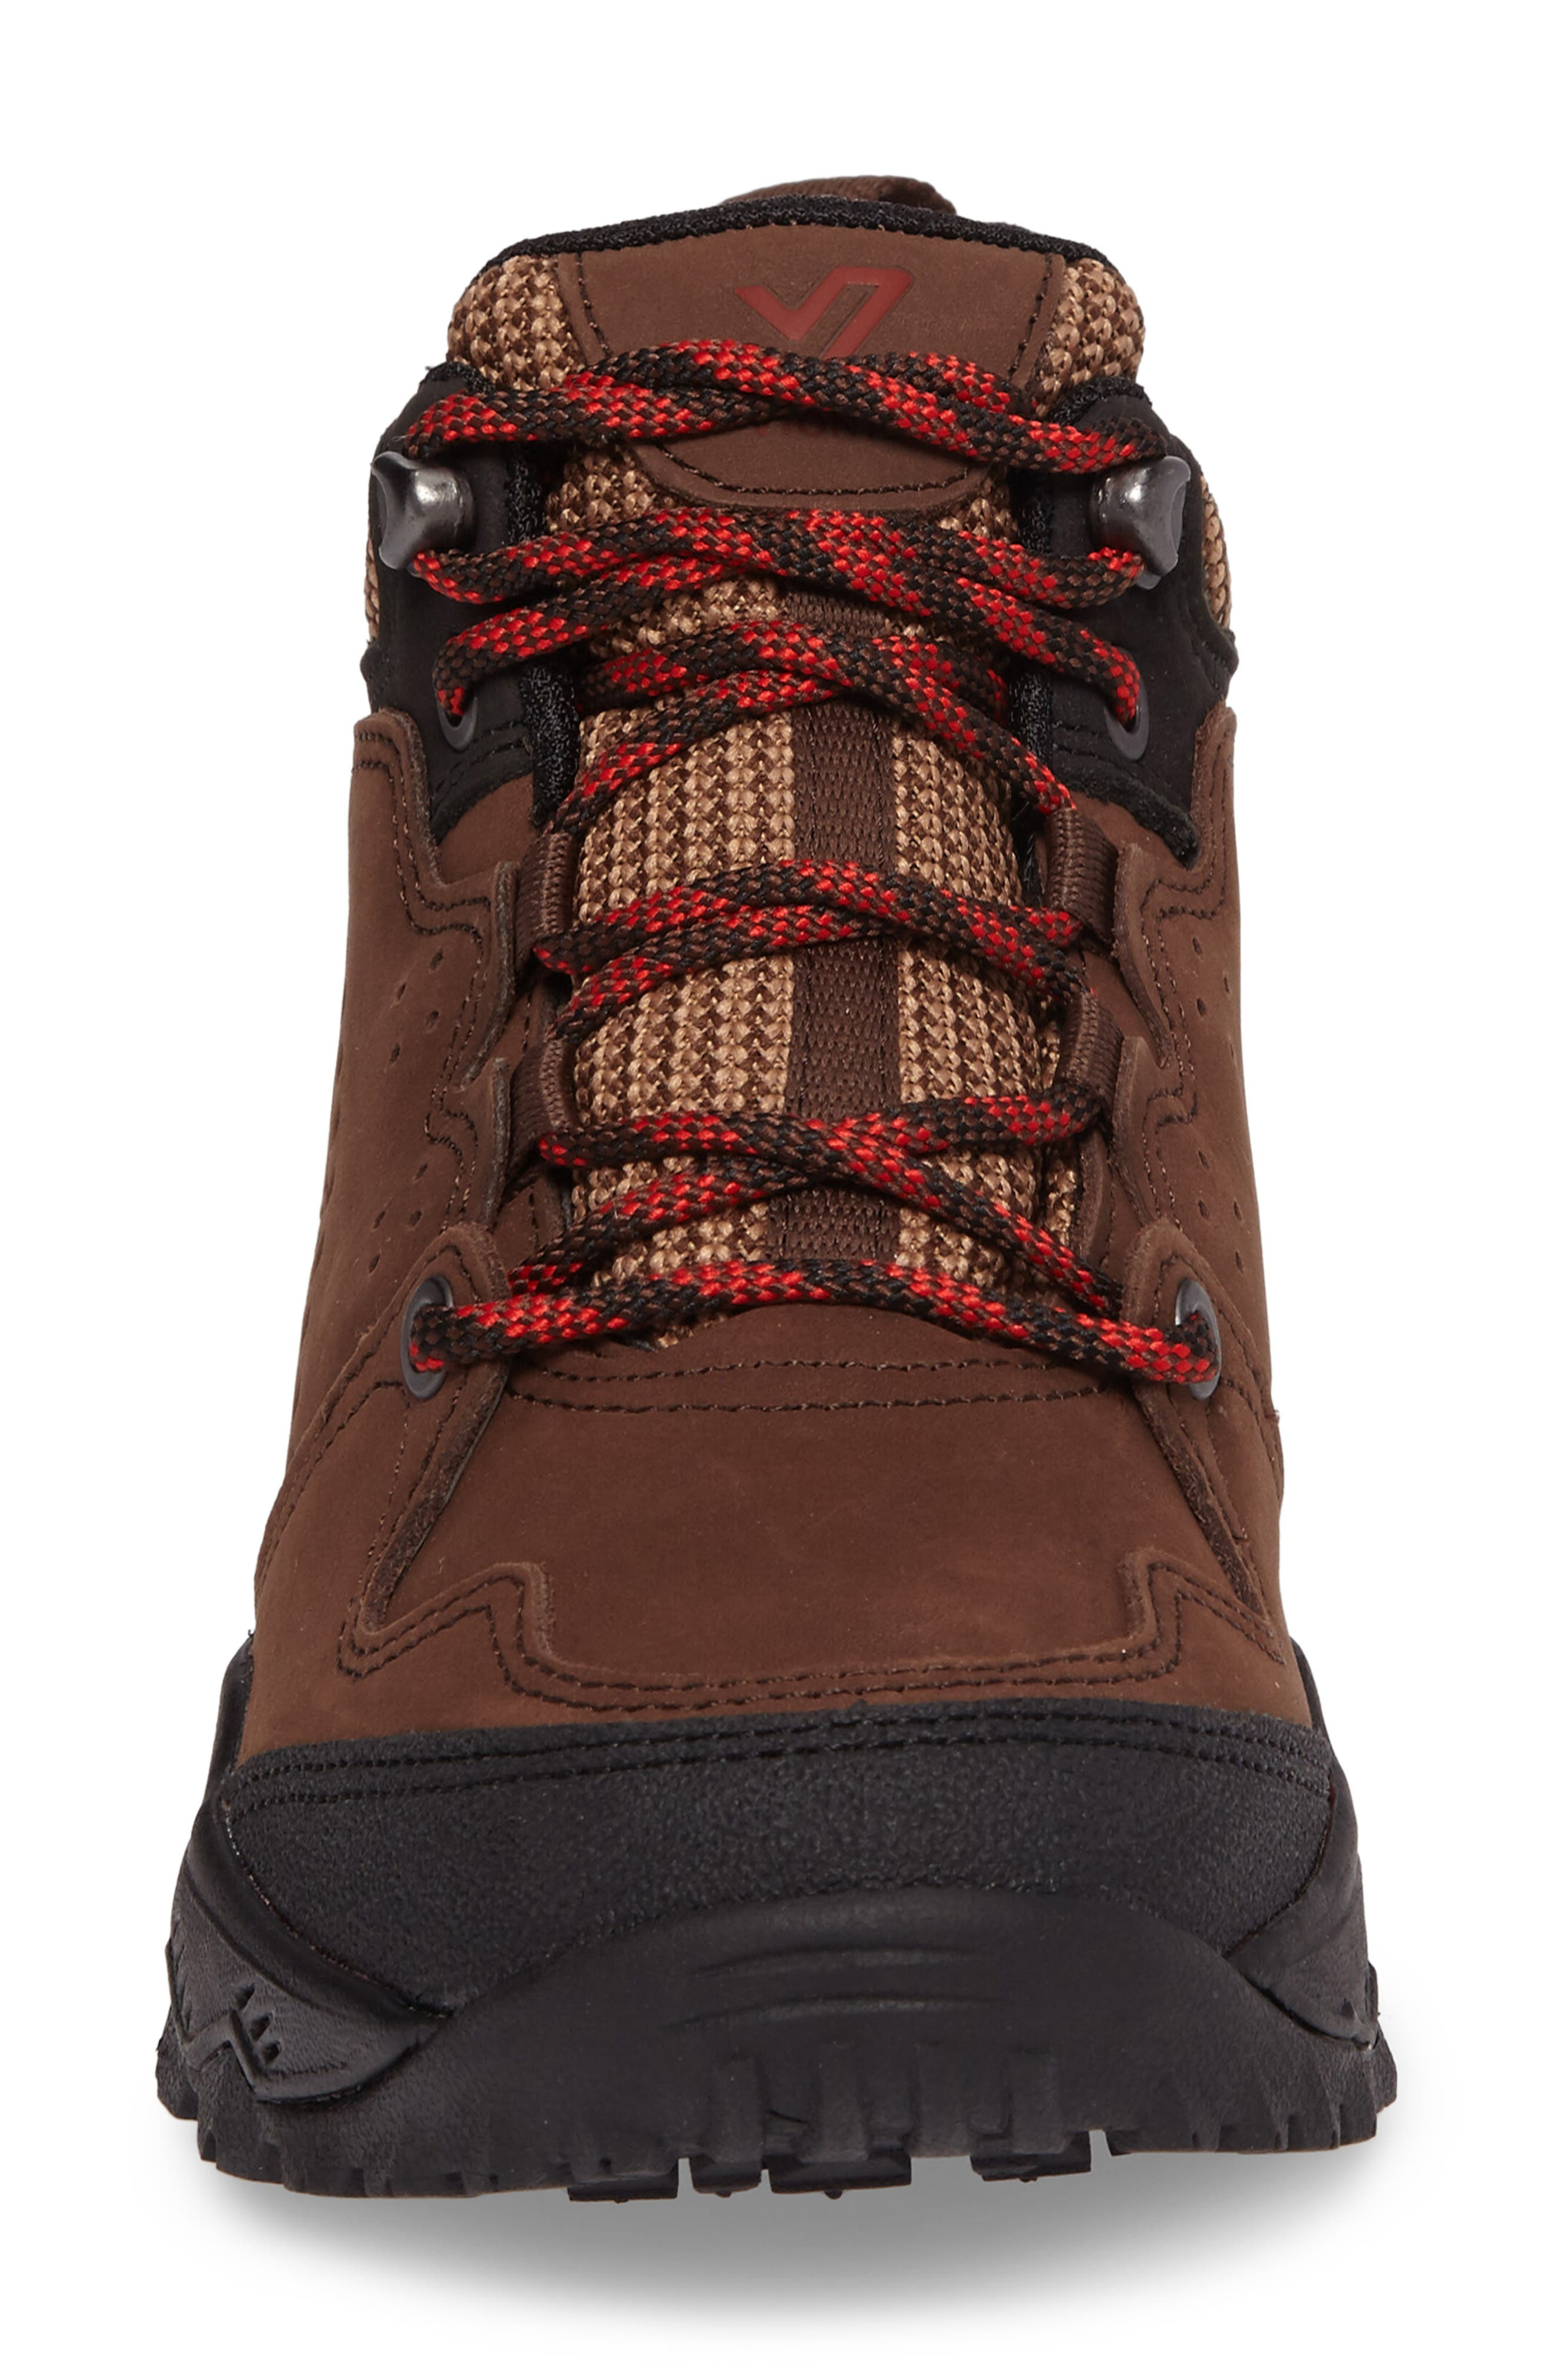 Everett Hiking Shoe,                             Alternate thumbnail 4, color,                             Brown / Red Leather